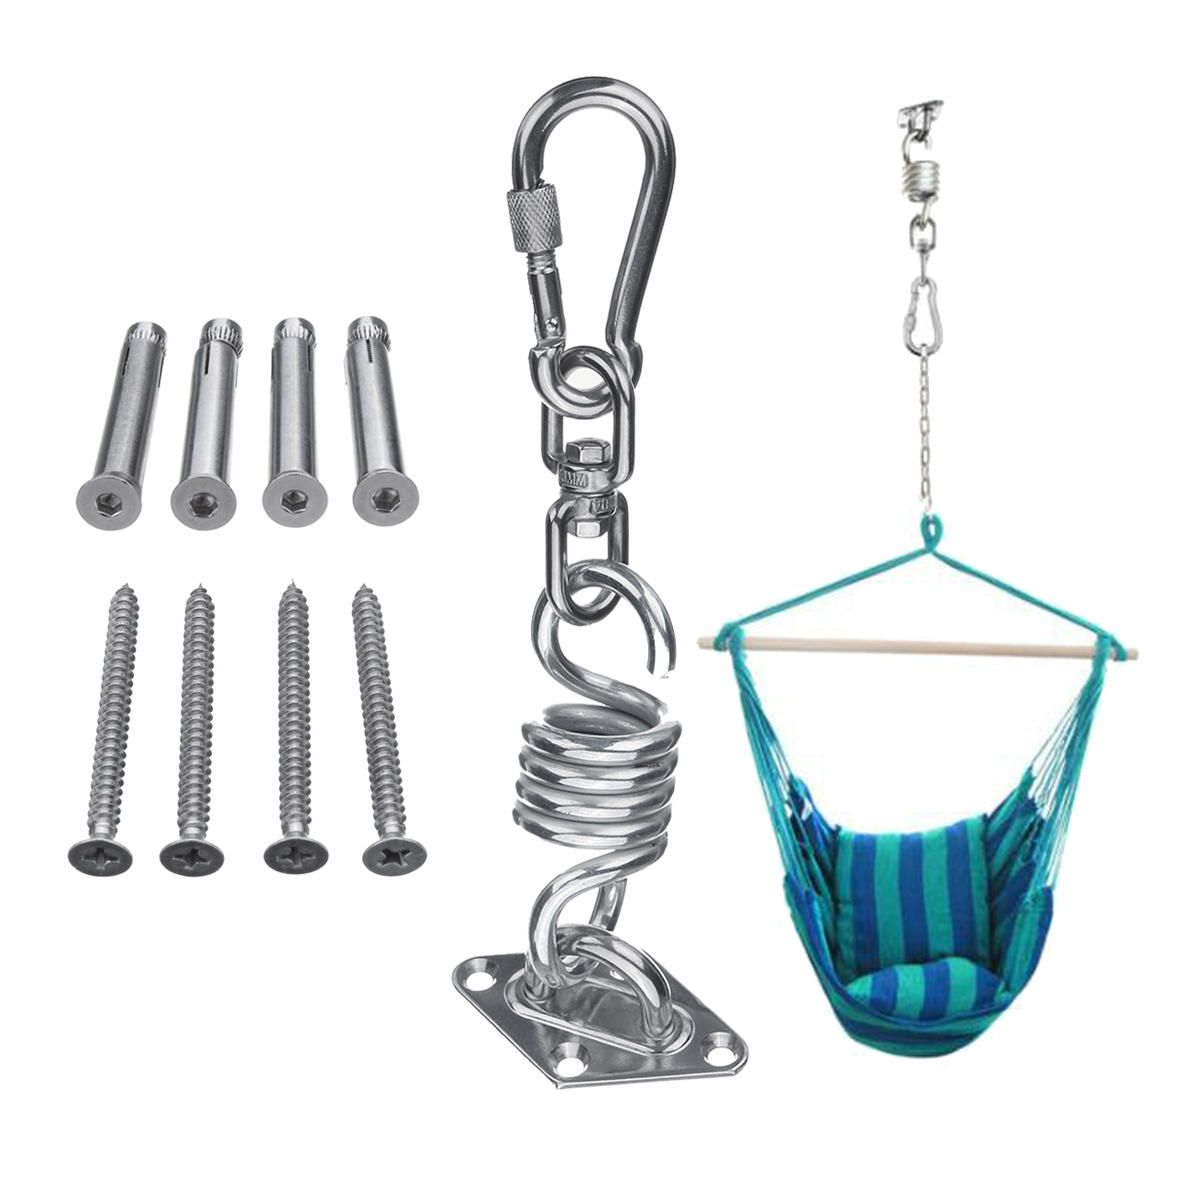 Stainless Steel Hammock Chair Hanging Kitceiling Mount Spring Swivel Snap Hook Accessories Hammock Chair Hammock Accessories Swivel Snap Hooks